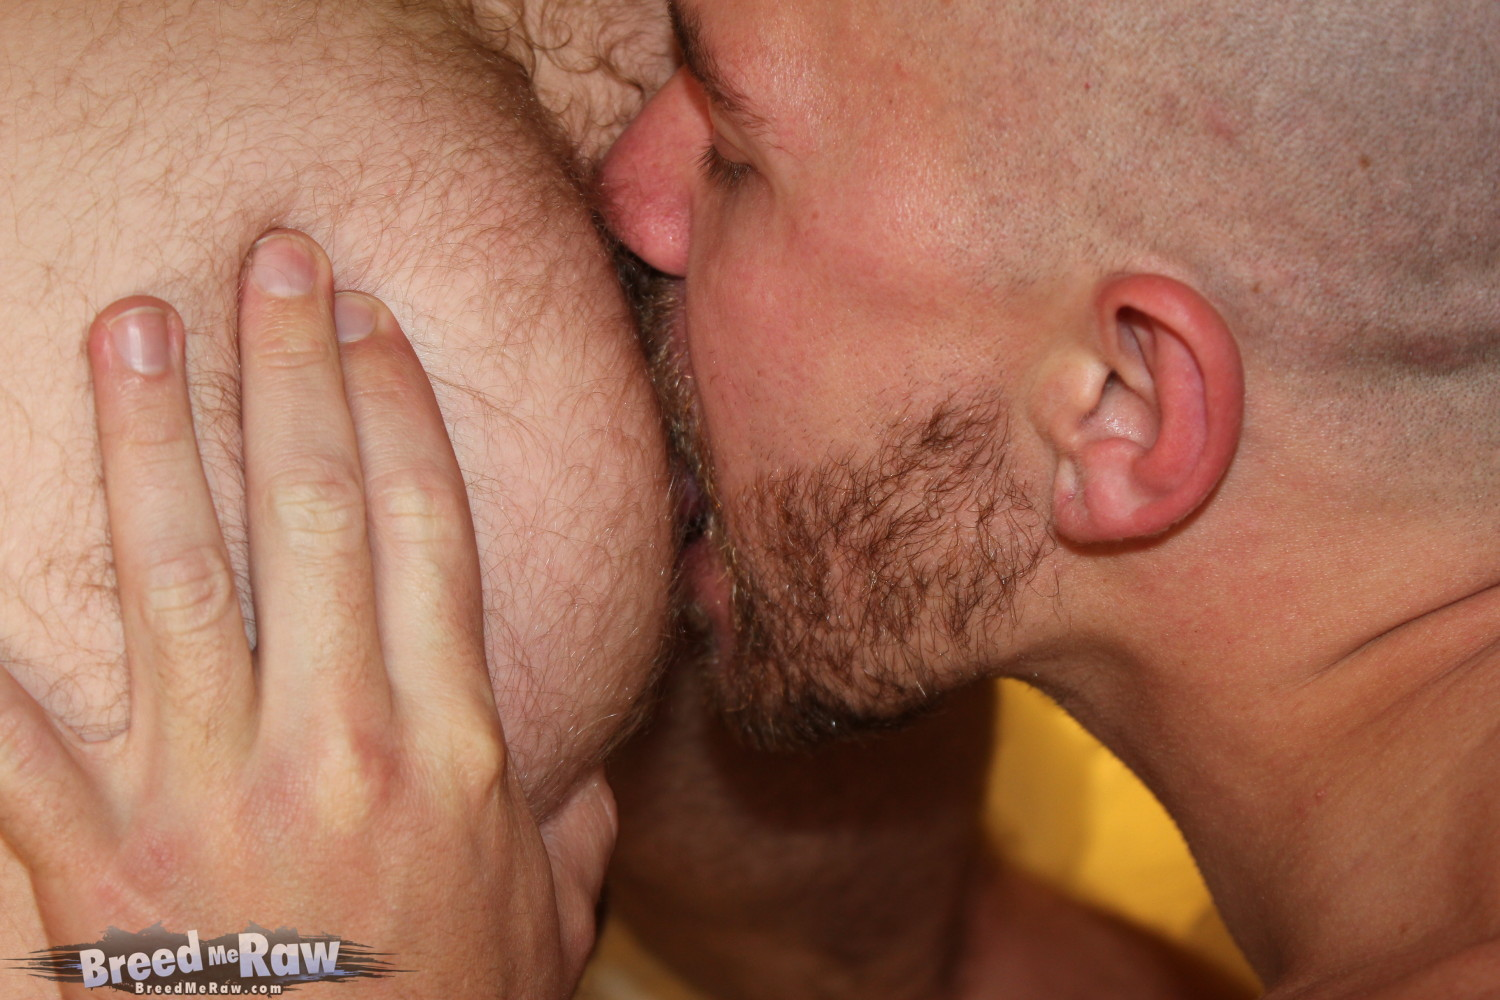 Breed-Me-Raw-Butch-Bloom-and-James-Roscoe-Bareback-Fucking-BBBH-Big-Cock-06 Hairy Hot Amateur Hole Gets Barebacked By A Masculine Hung Cock